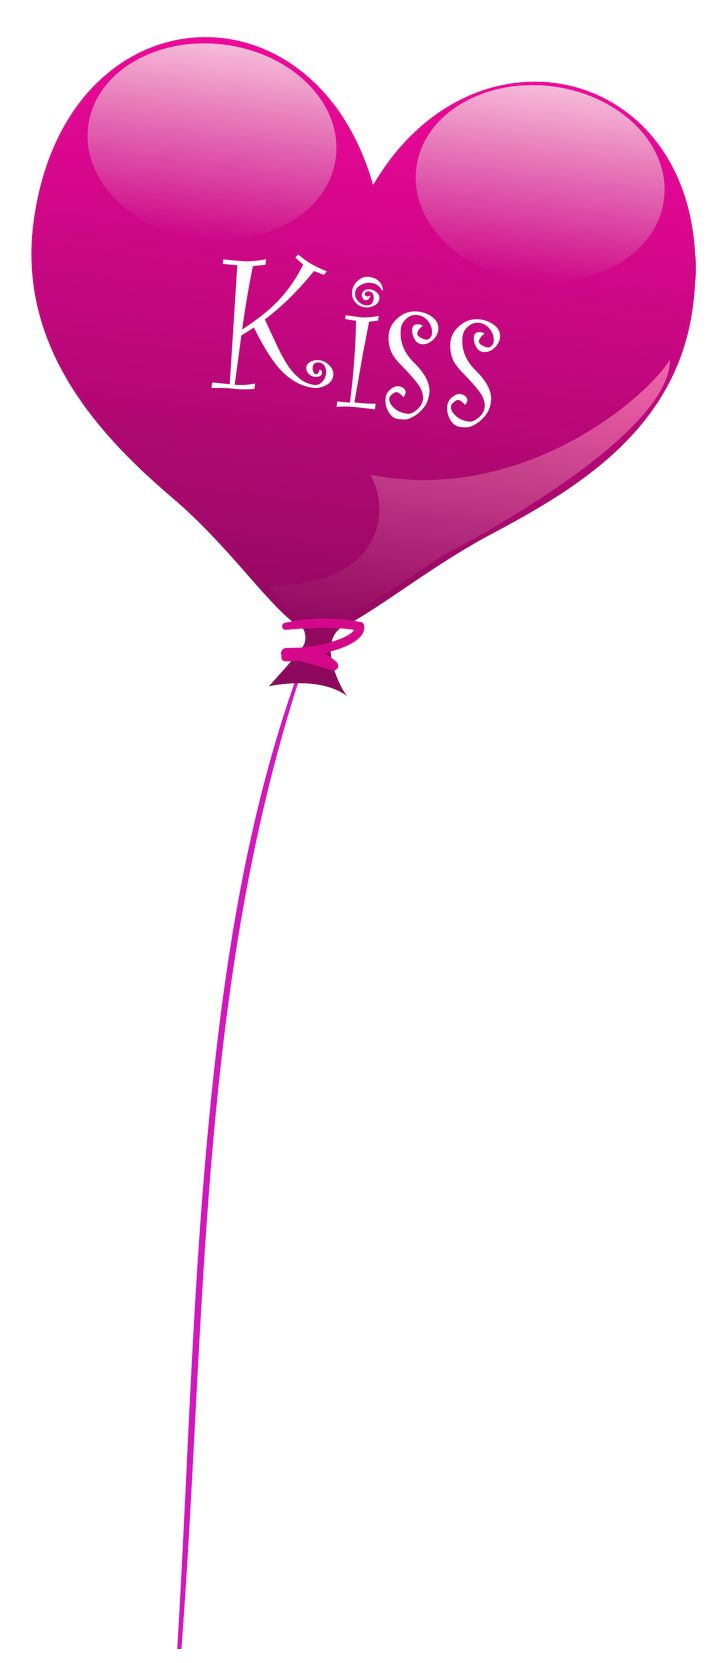 Transparent Heart Kiss Balloon PNG Clipart